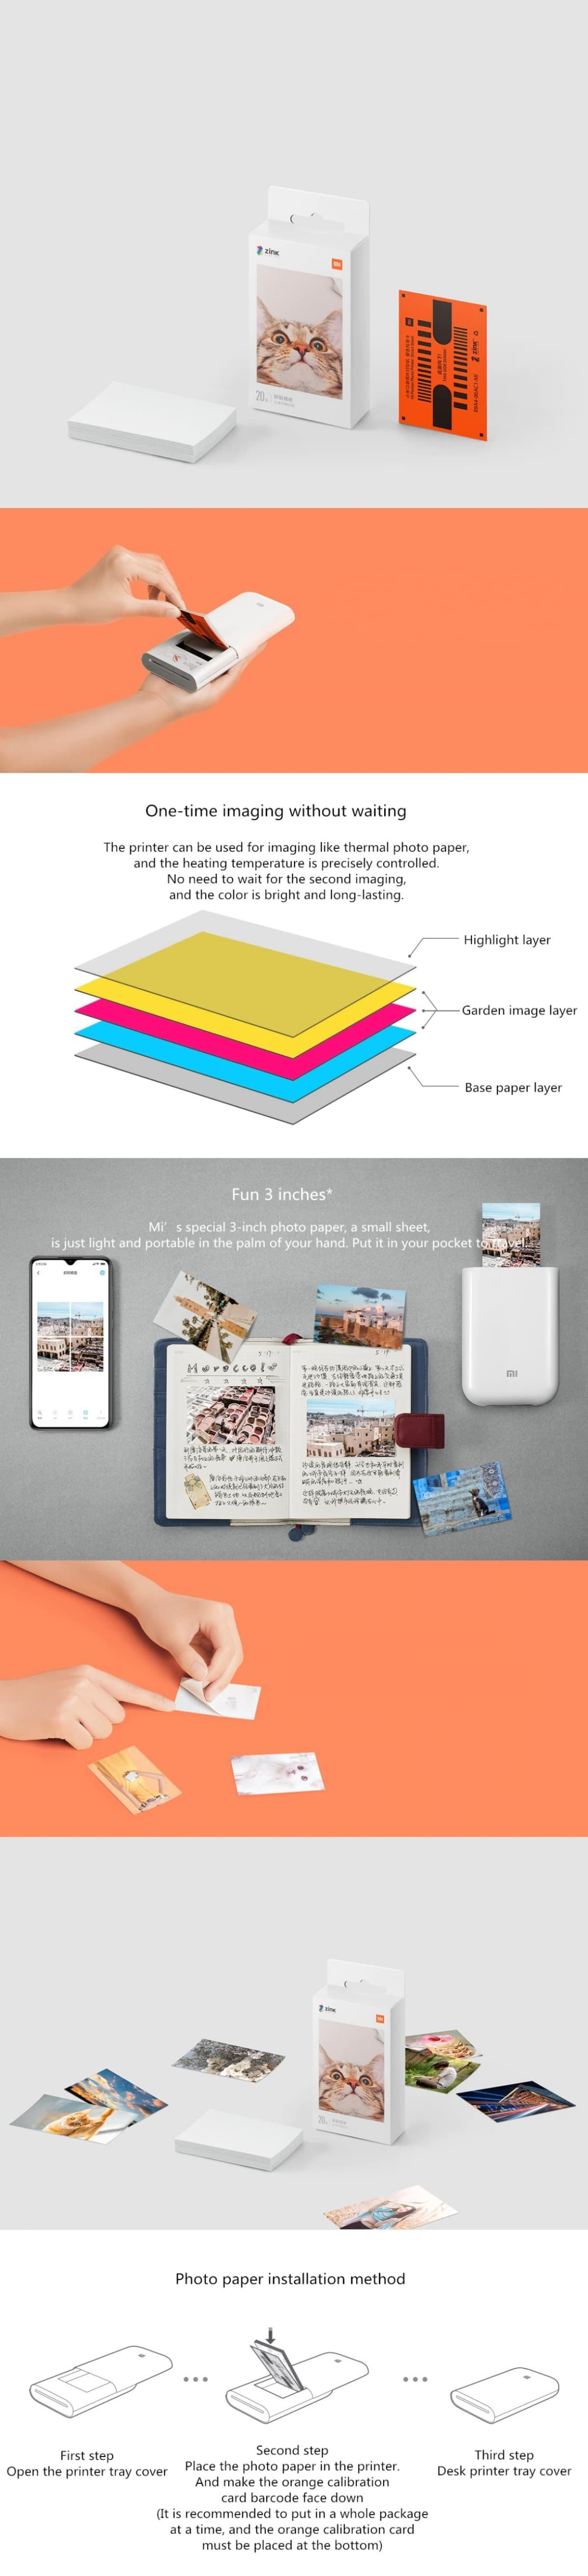 Hartie-foto-pentru-Xiaomi-Pocket-Photo-Printer77b5f9b0a4efe5eb.jpg